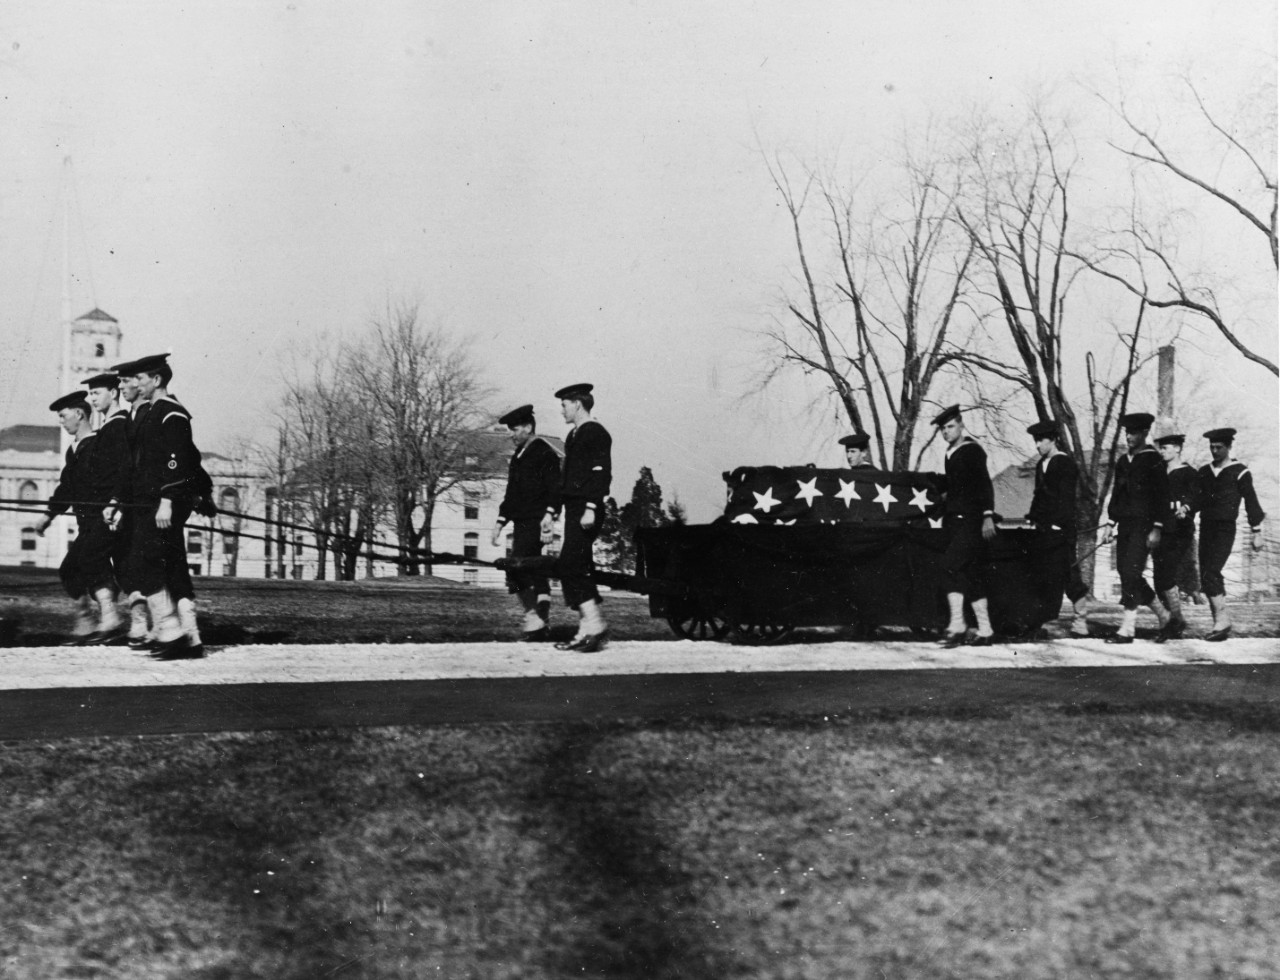 A 26 January 1913 photo by Mrs. C. R. Miller, showing the guard of honor transporting the remains of John Paul Jones to the crypt of the Chapel of the Naval Academy on the Naval Academy grounds.